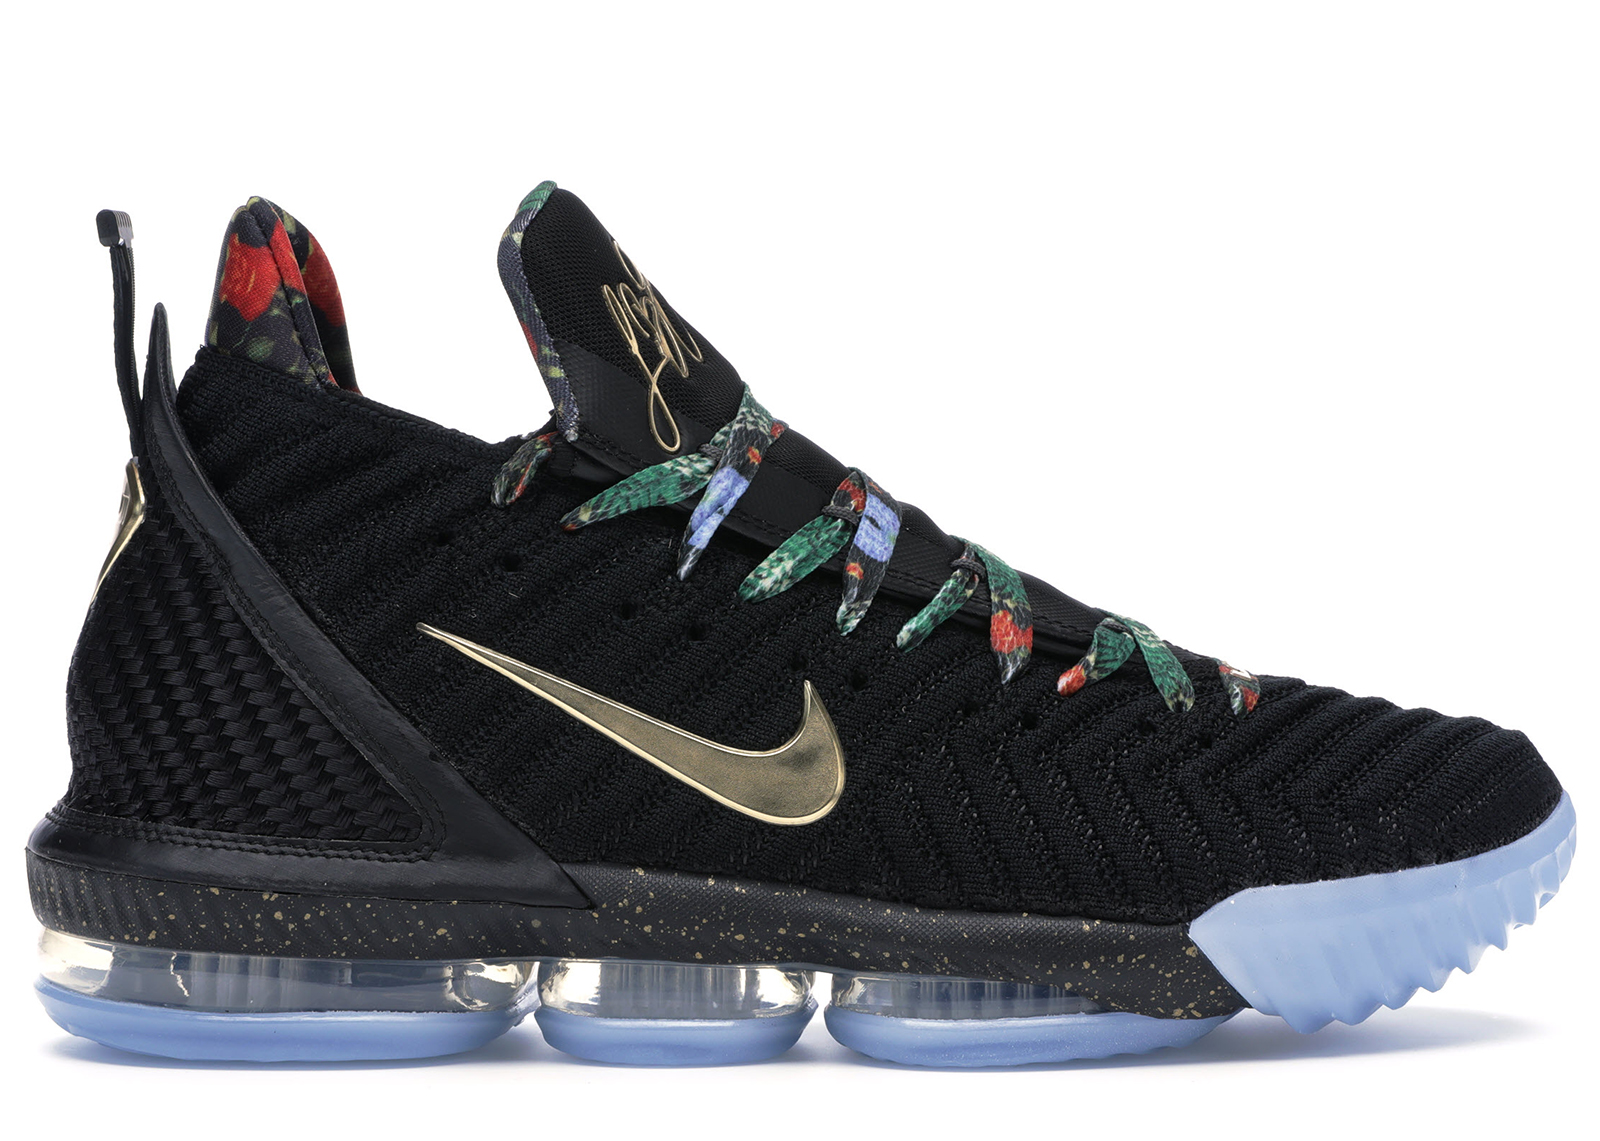 Buy Nike LeBron Shoes & Deadstock Sneakers